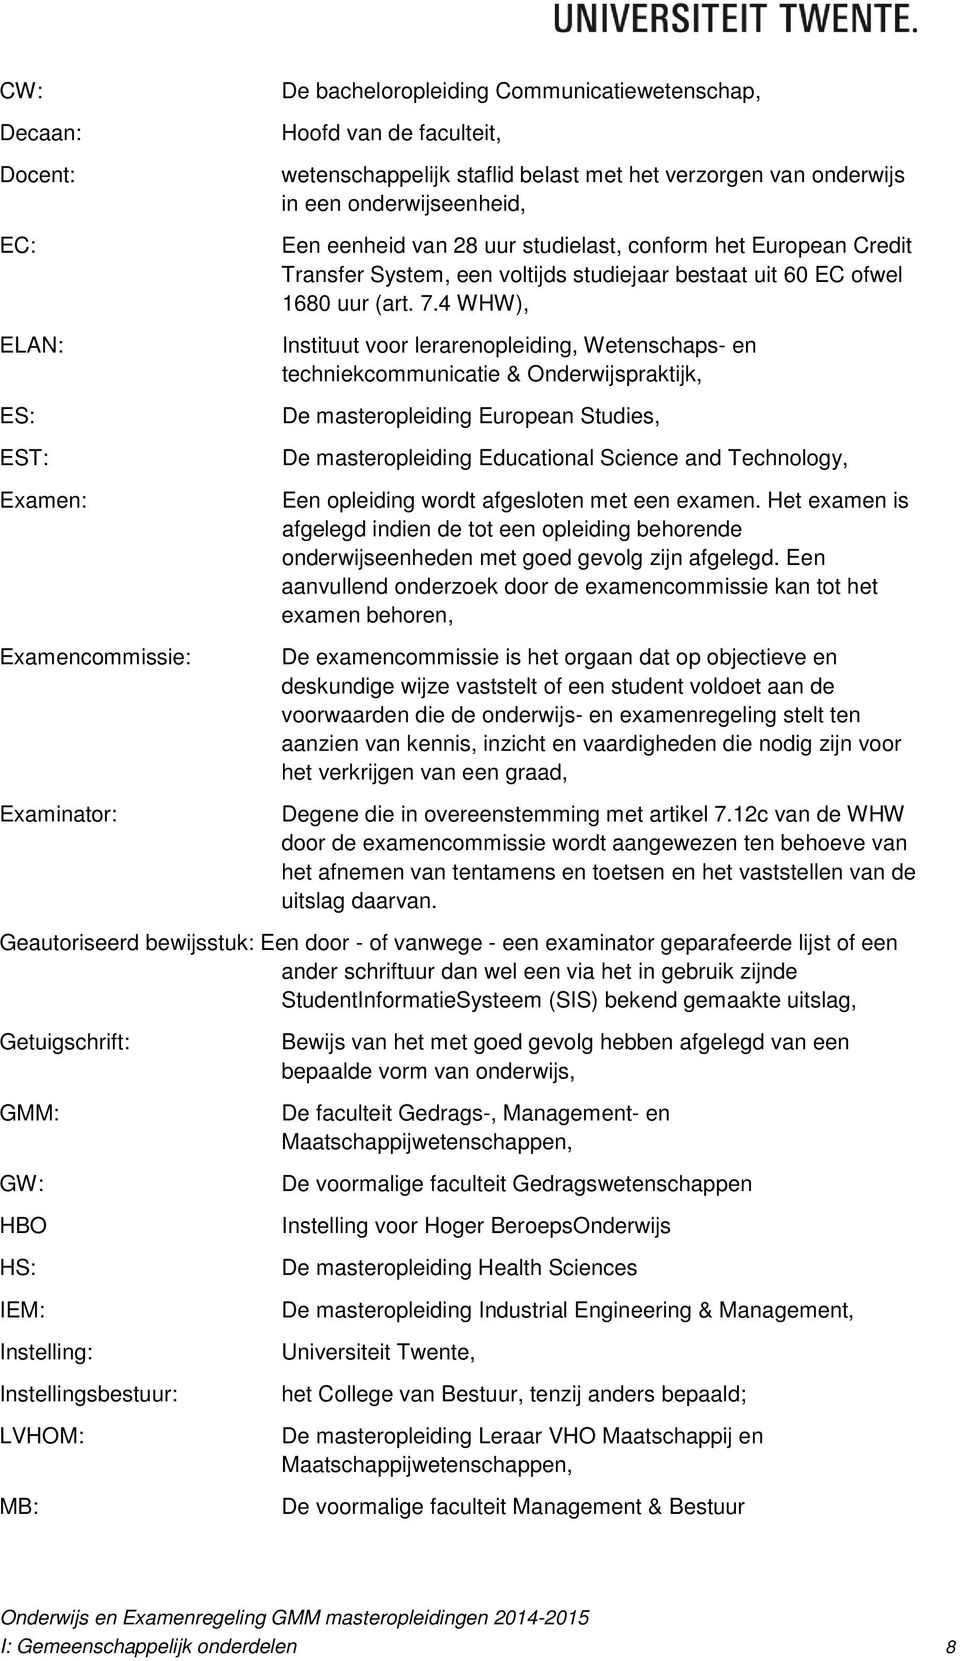 4 WHW), Instituut voor lerarenopleiding, Wetenschaps- en techniekcommunicatie & Onderwijspraktijk, De masteropleiding European Studies, De masteropleiding Educational Science and Technology, Een